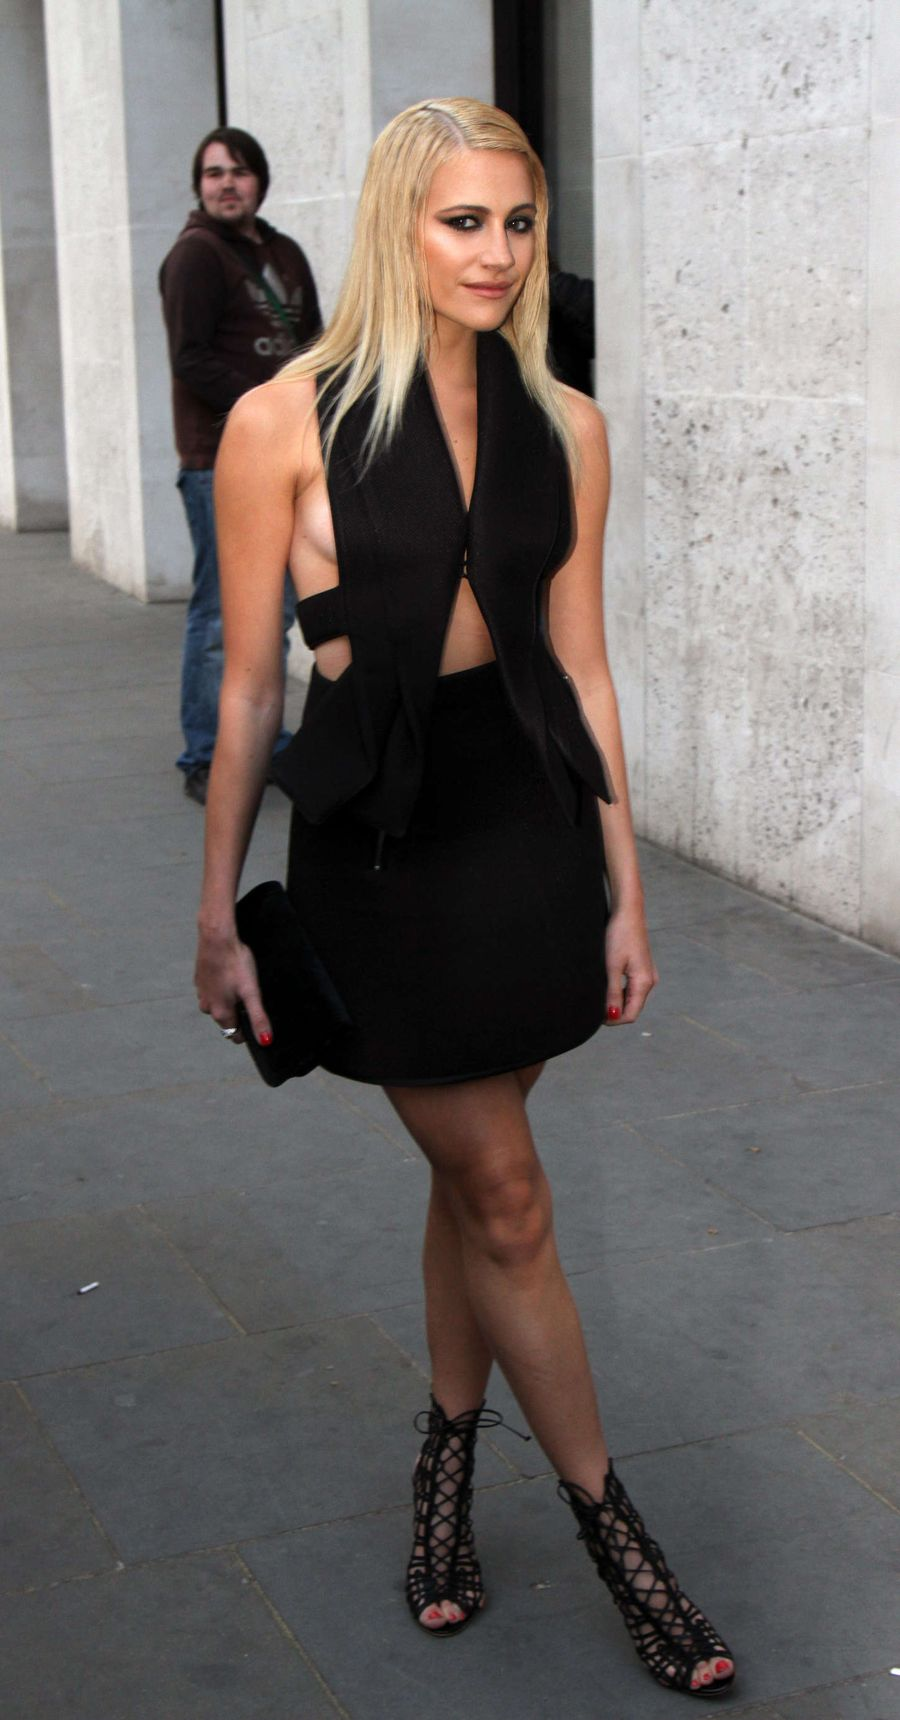 Pixie Lott - Notion Magazine Preview Party Dinner